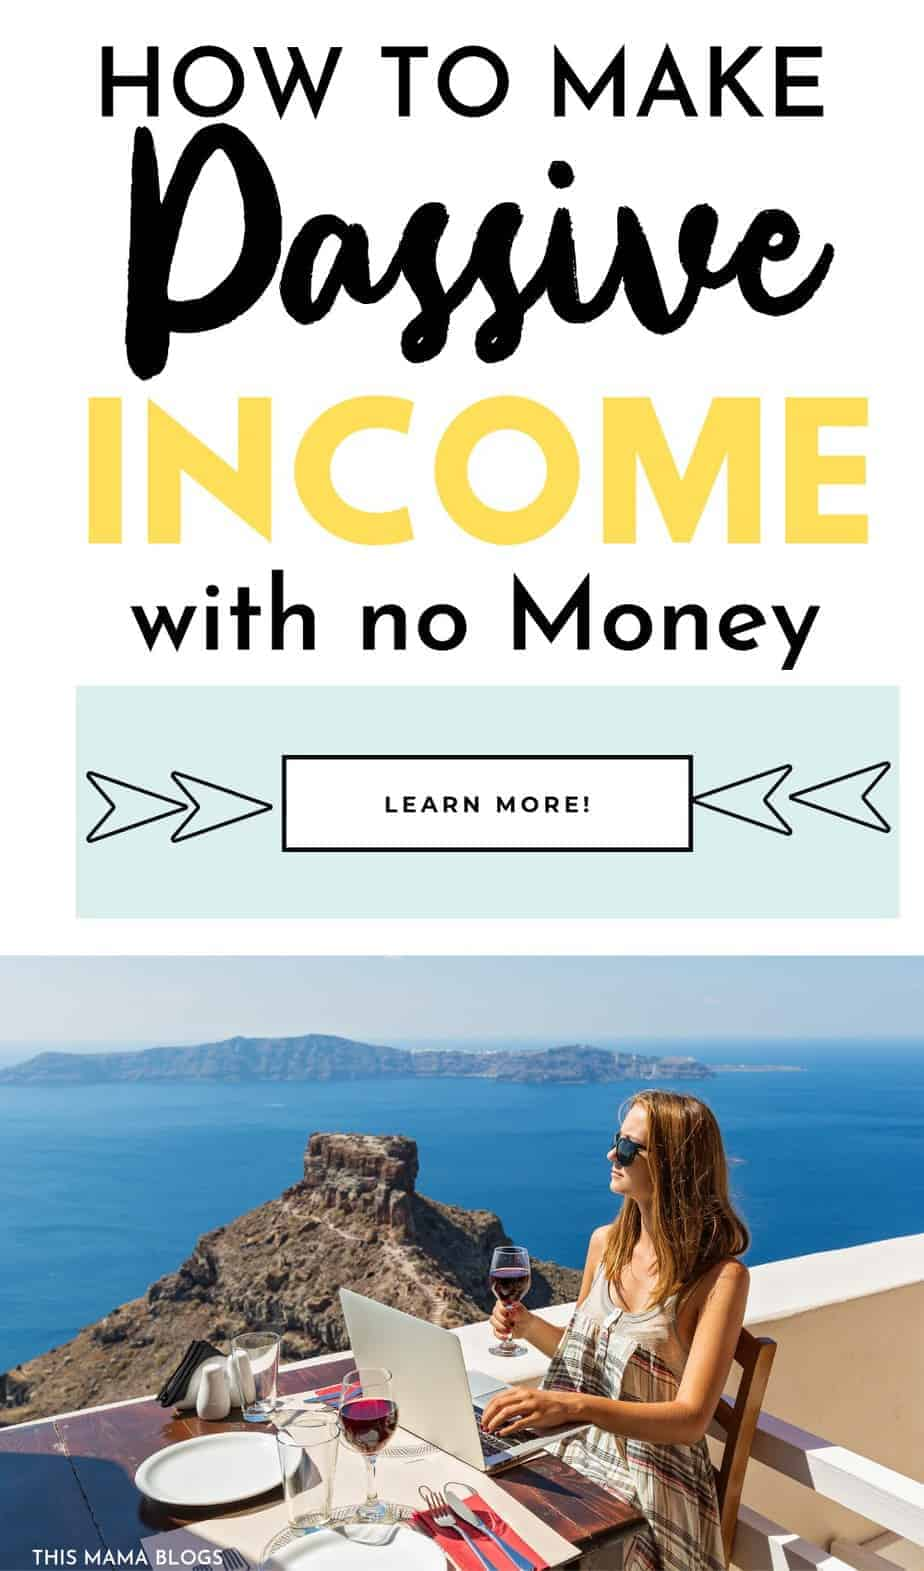 Everyone wants to make money while they sleep...but how to make passive income with no money or when you have little to invest? Here are 9 ways to make passive income for you! Yes, you can start generating passive income right now! #passiveincomeideas #realestateinvesting #makemoneywhileyousleep